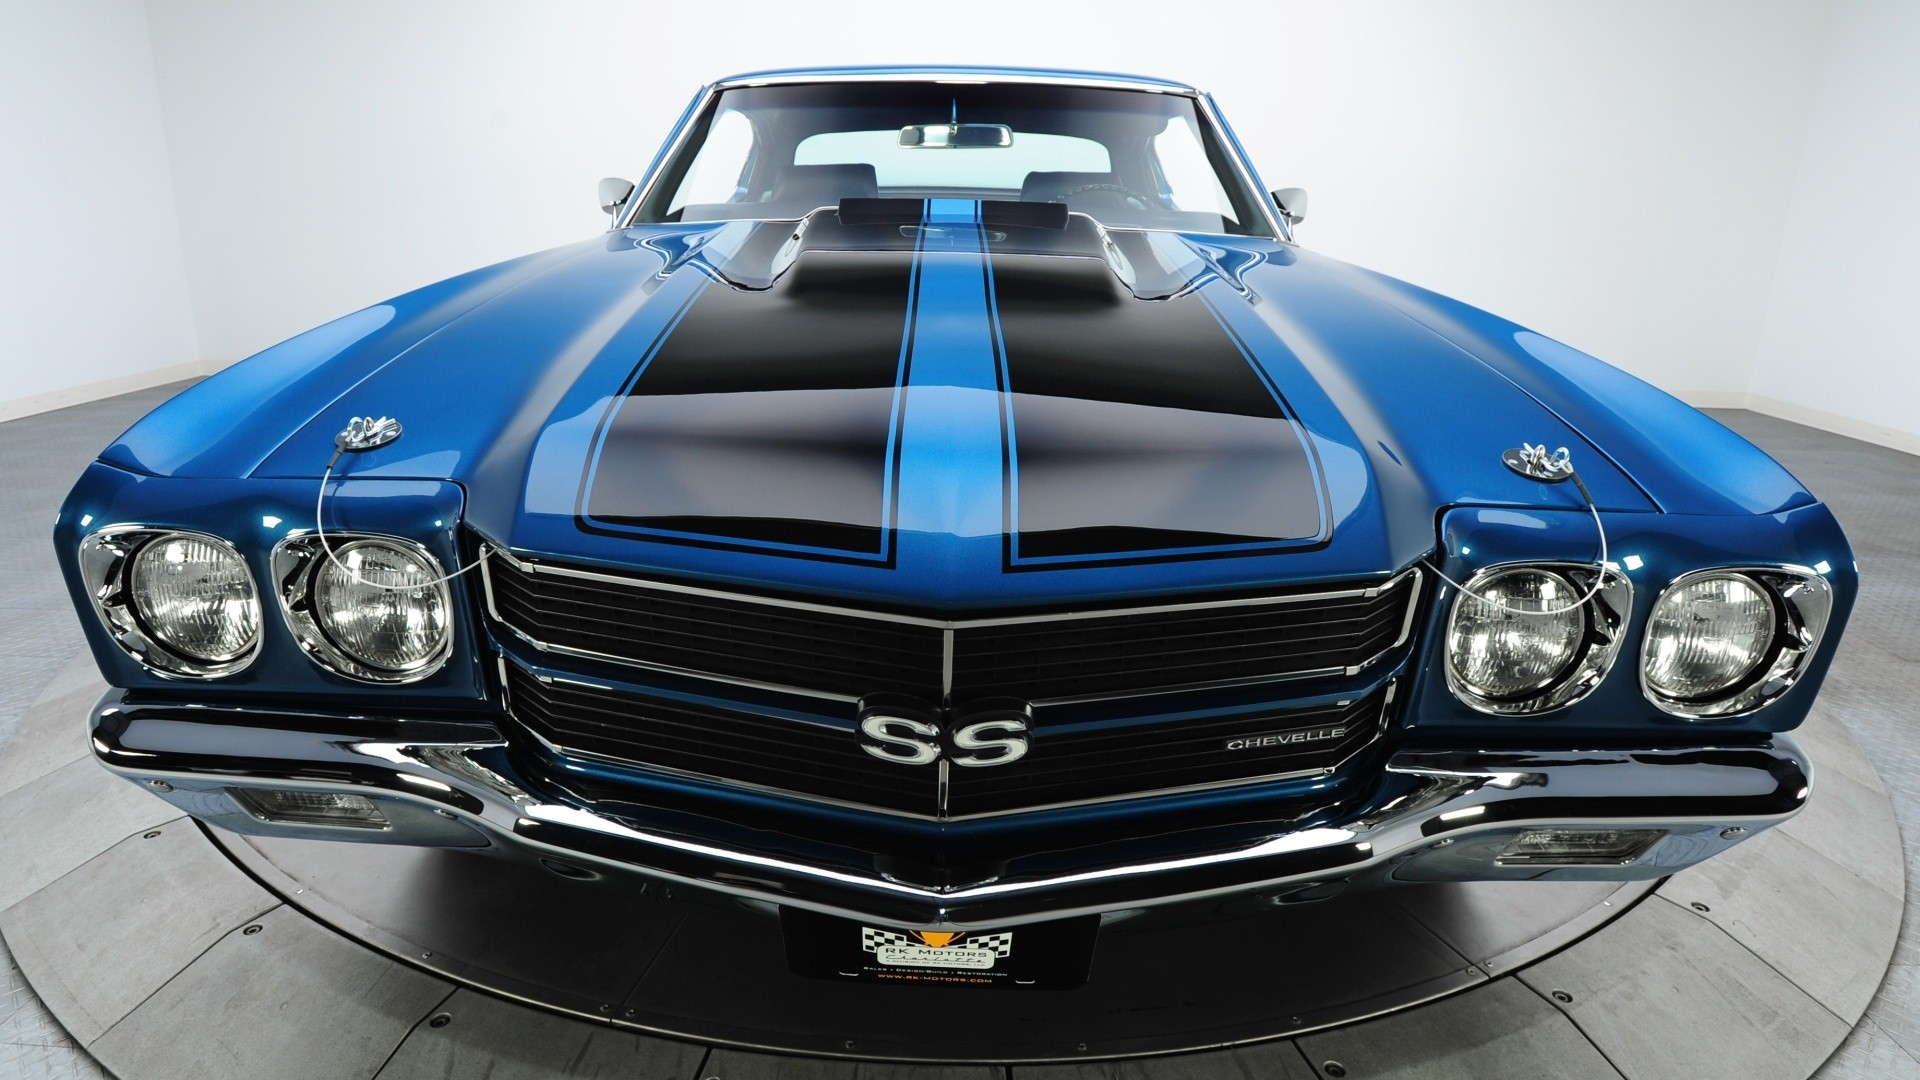 1920x1080 chevrolet chevelle ss wallpaper | Cars Background Wallpapers HD